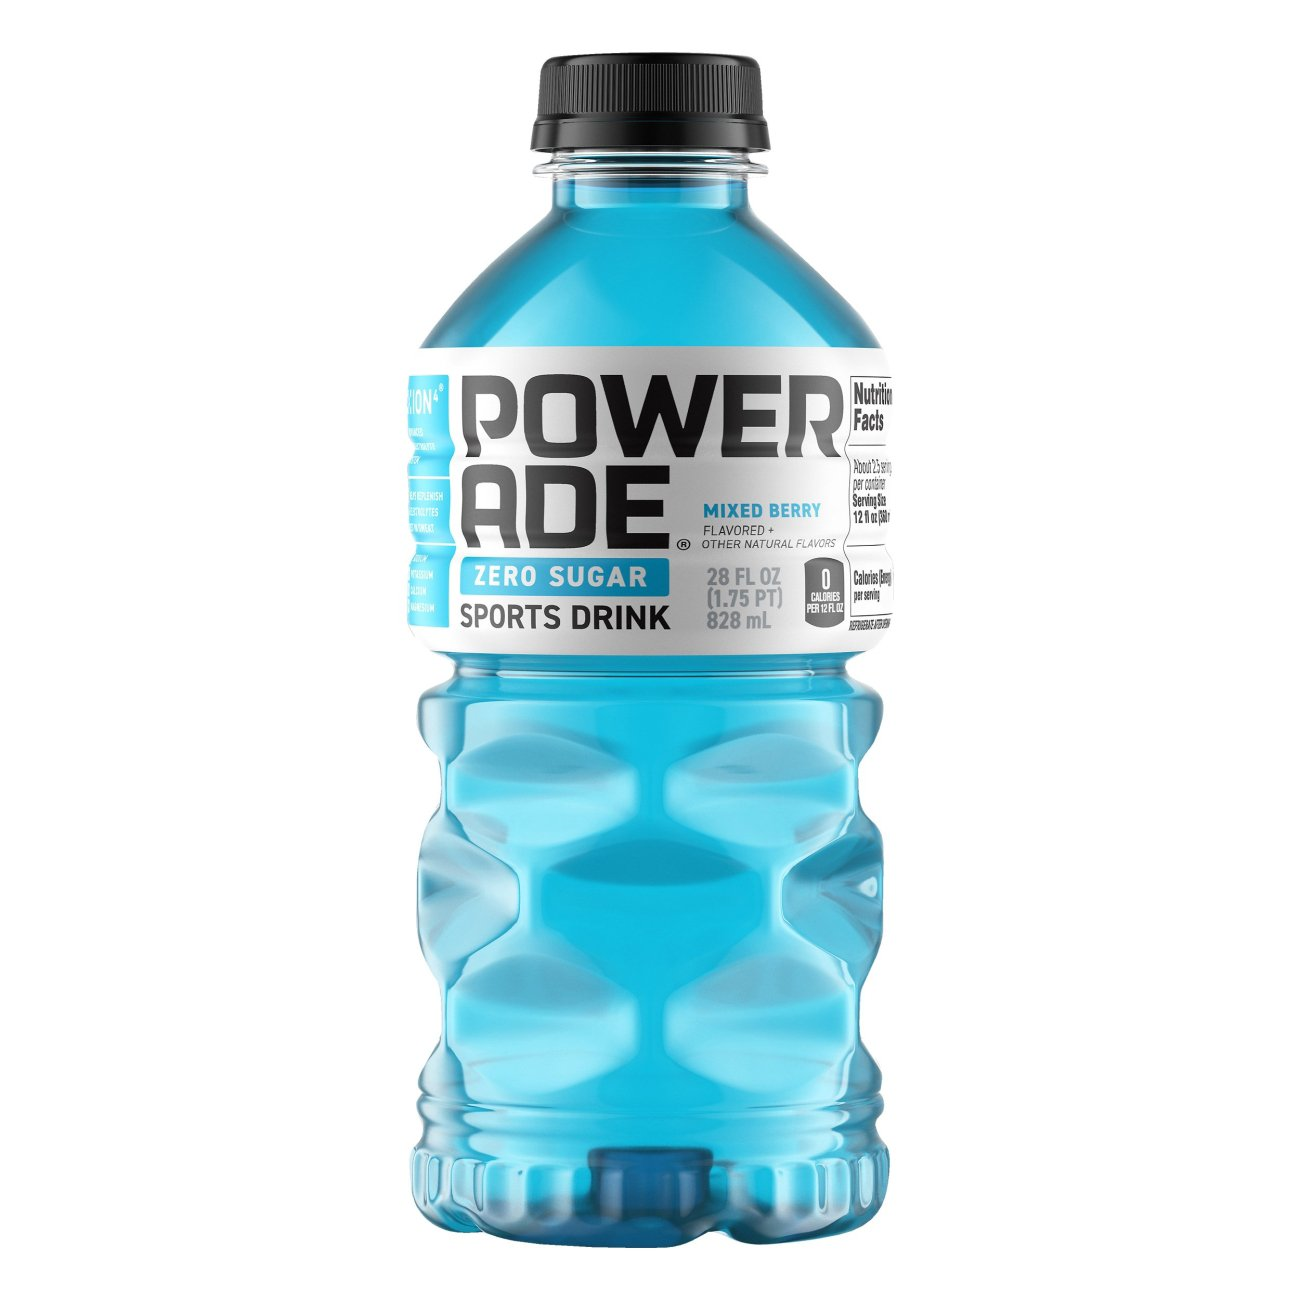 Powerade Zero Mixed Berry Sports Drink Shop Sports Energy Drinks At H E B